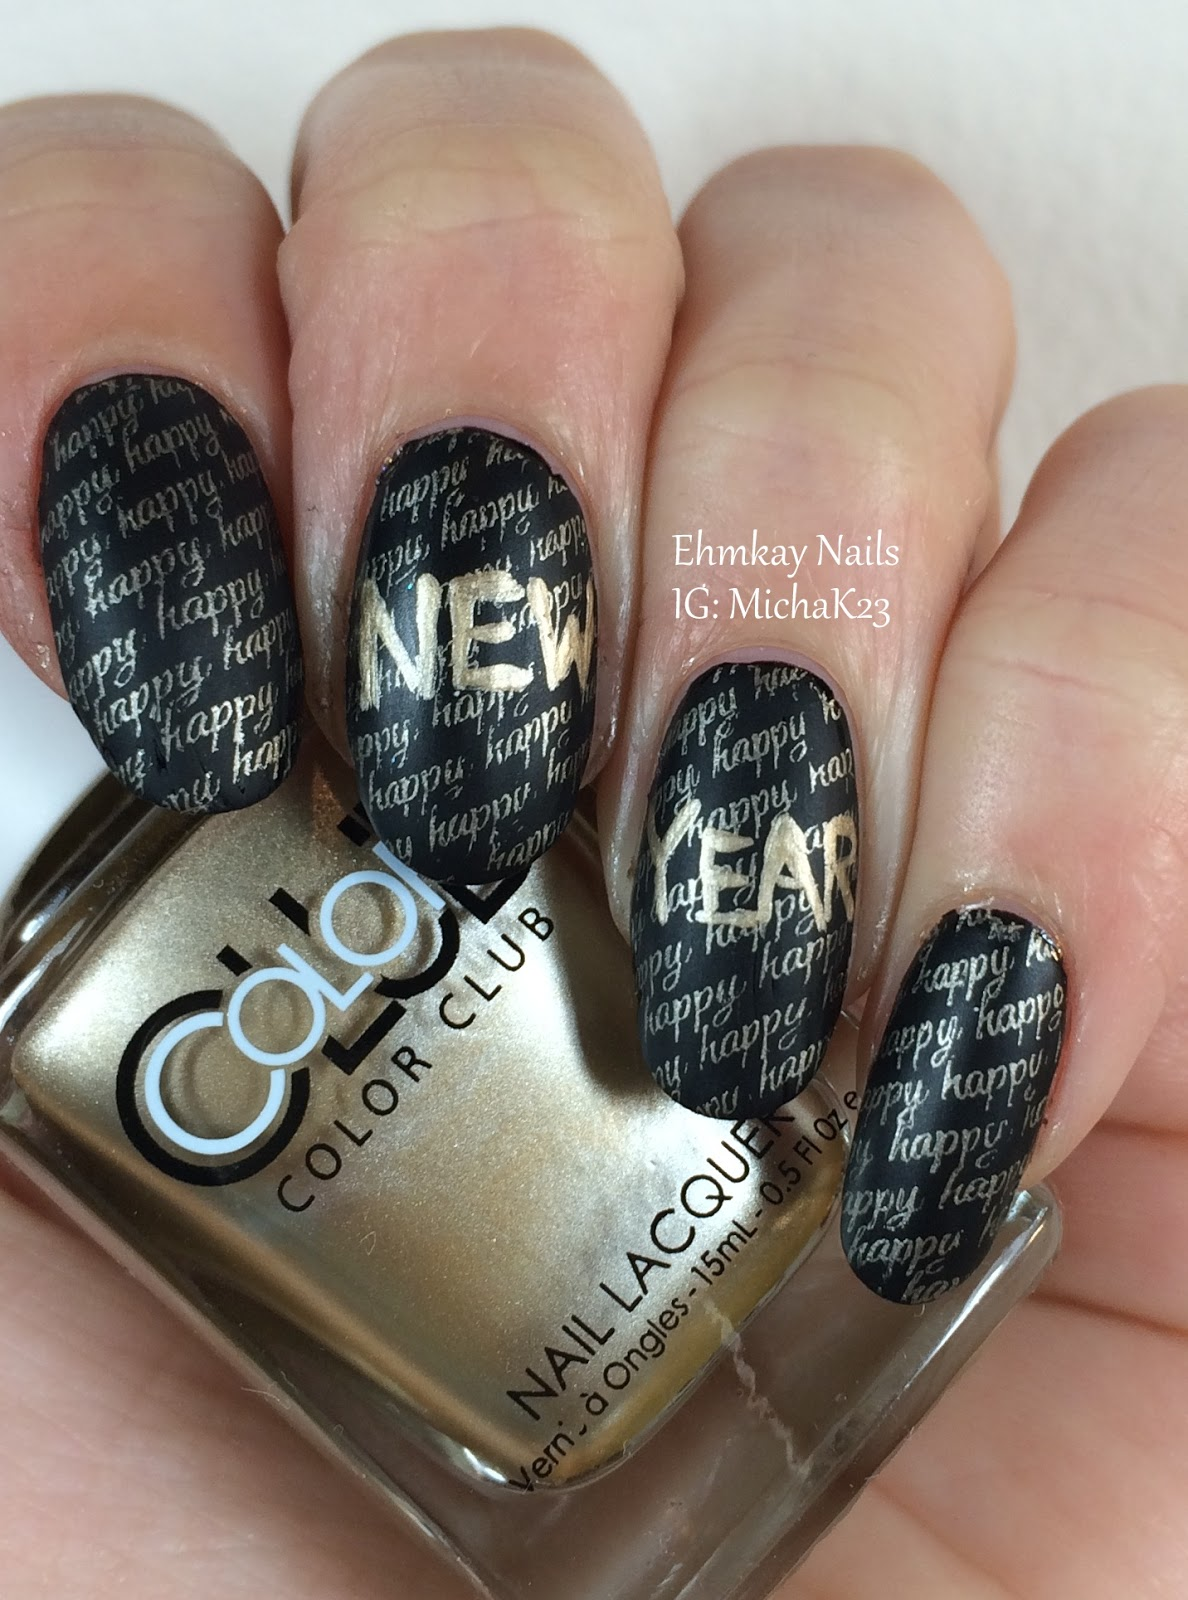 ehmkay nails: Happy New Year\'s Eve Nail Art Stamping